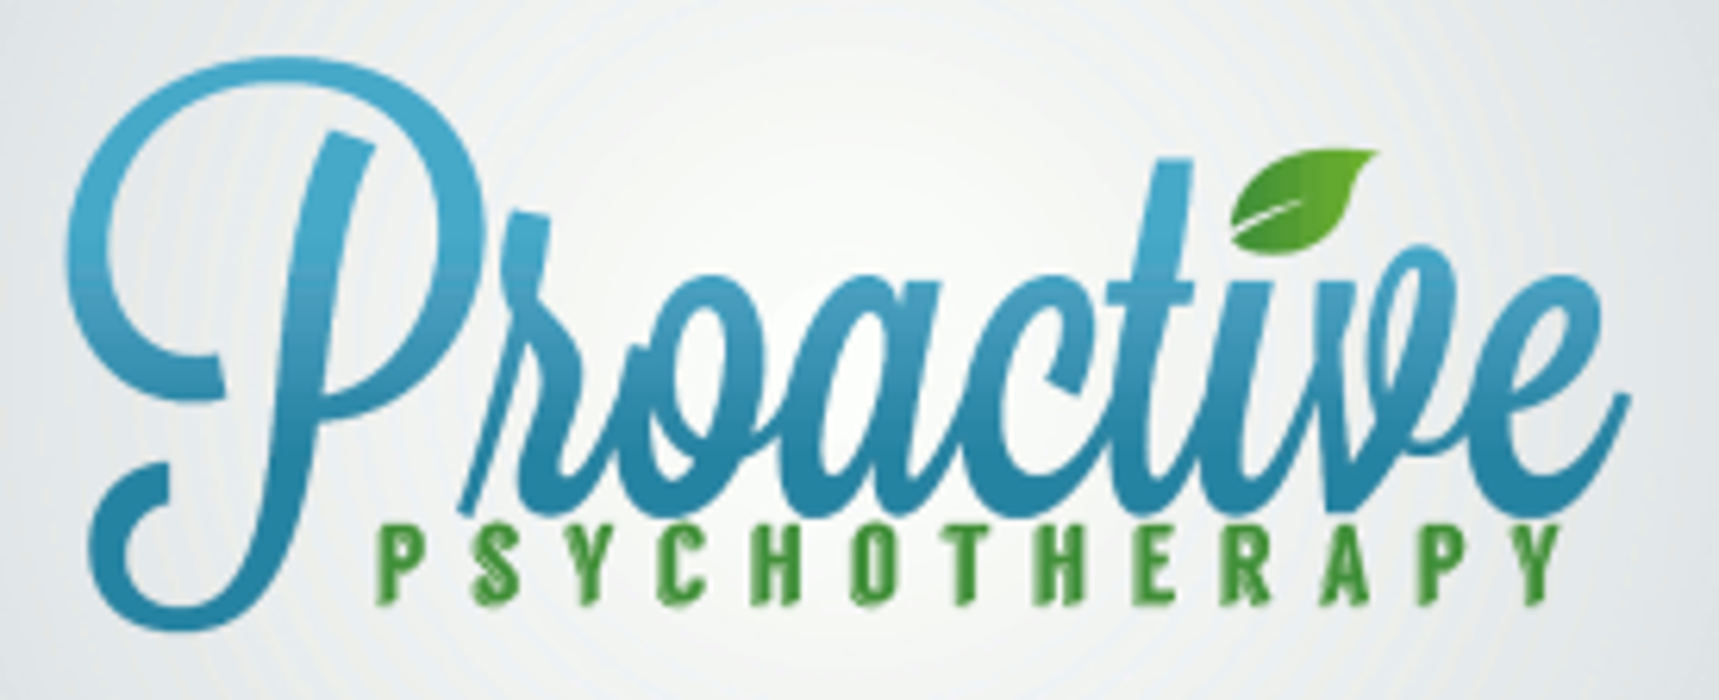 Proactive Psychotherapy, LLC - Chicago, IL